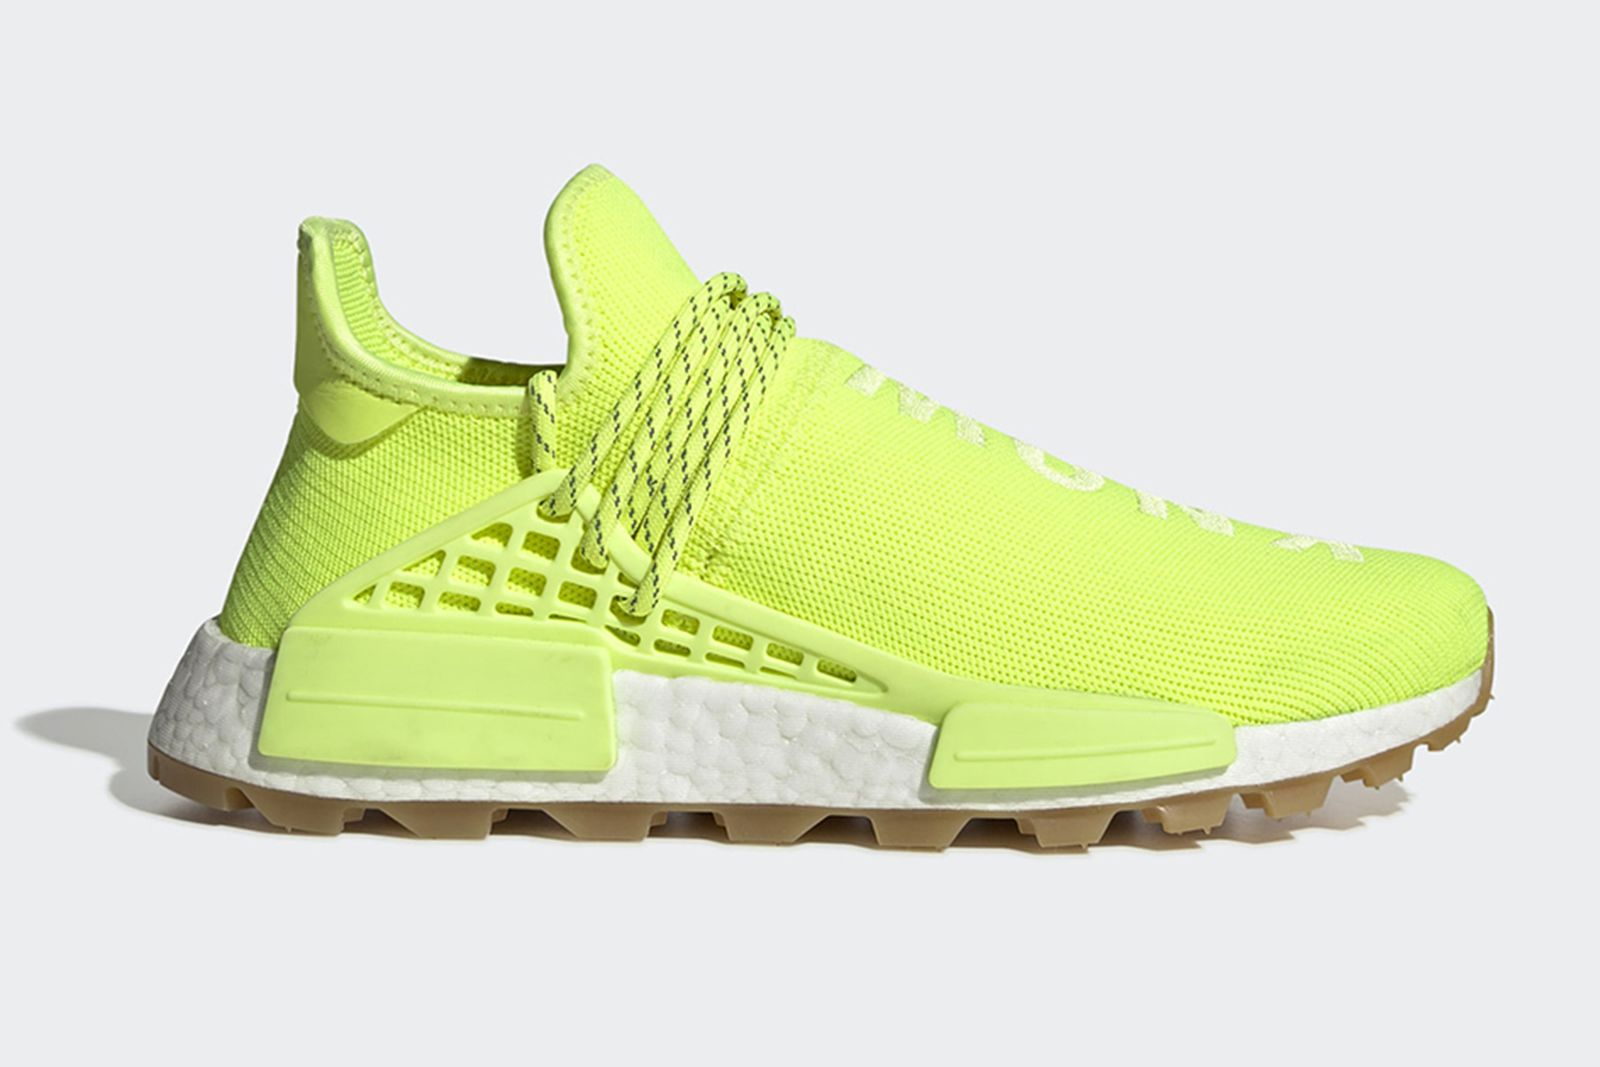 Every Pharrell Williams x adidas Sneaker You Can Still Shop